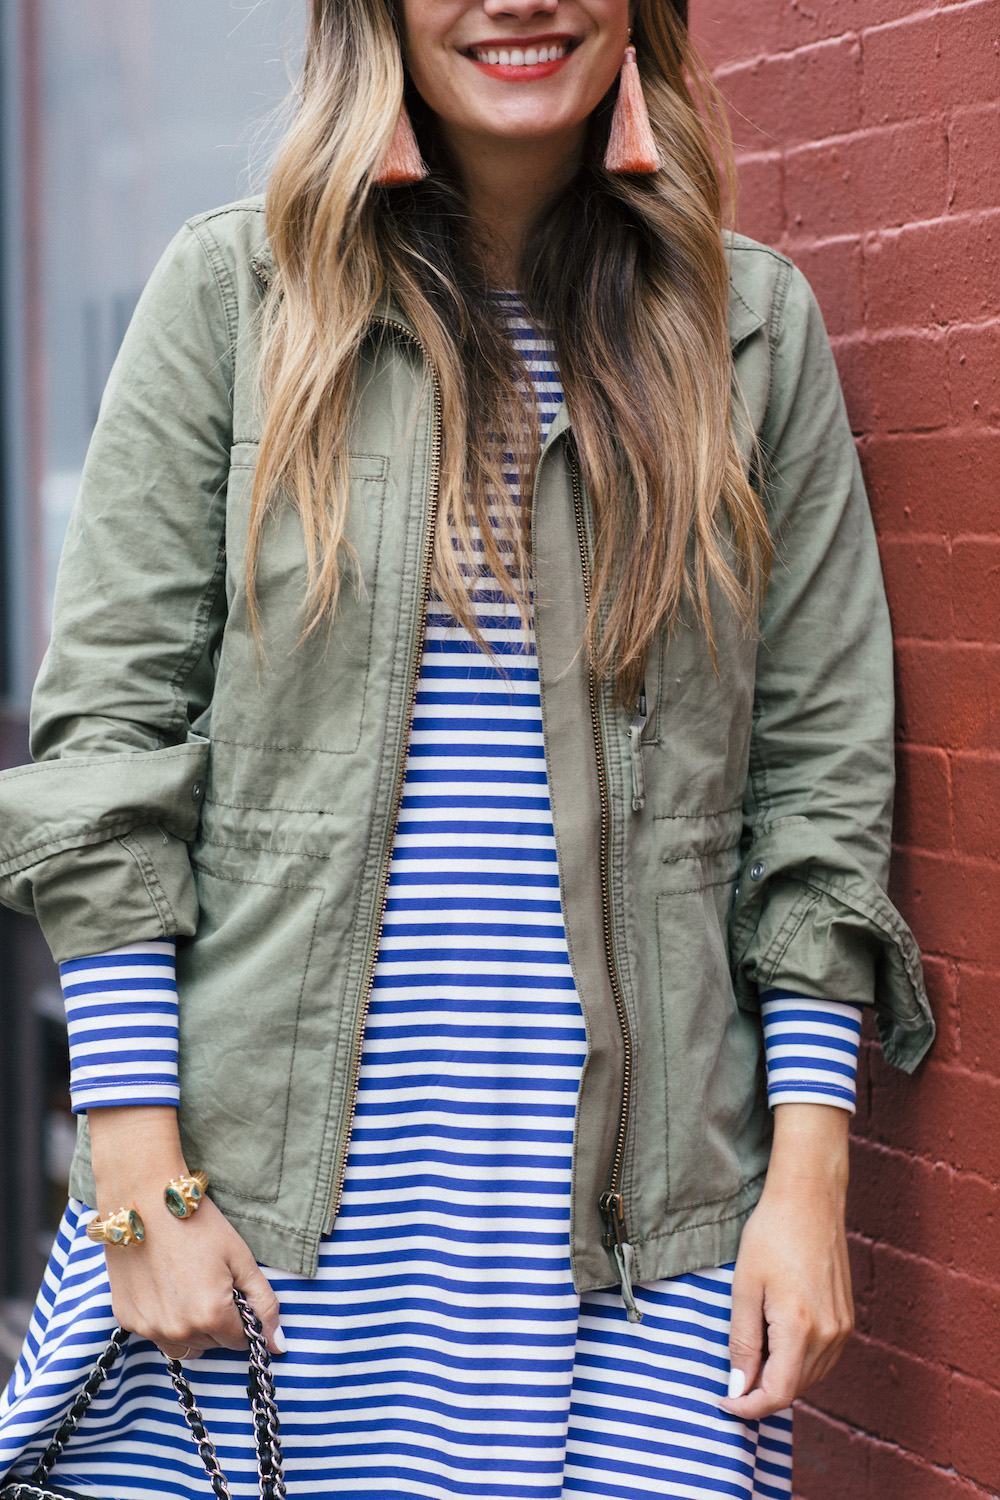 hart hagerty peach tassel earrings, madewell fleet jacket, jane hudson stripe dress | grace atwood, the stripe